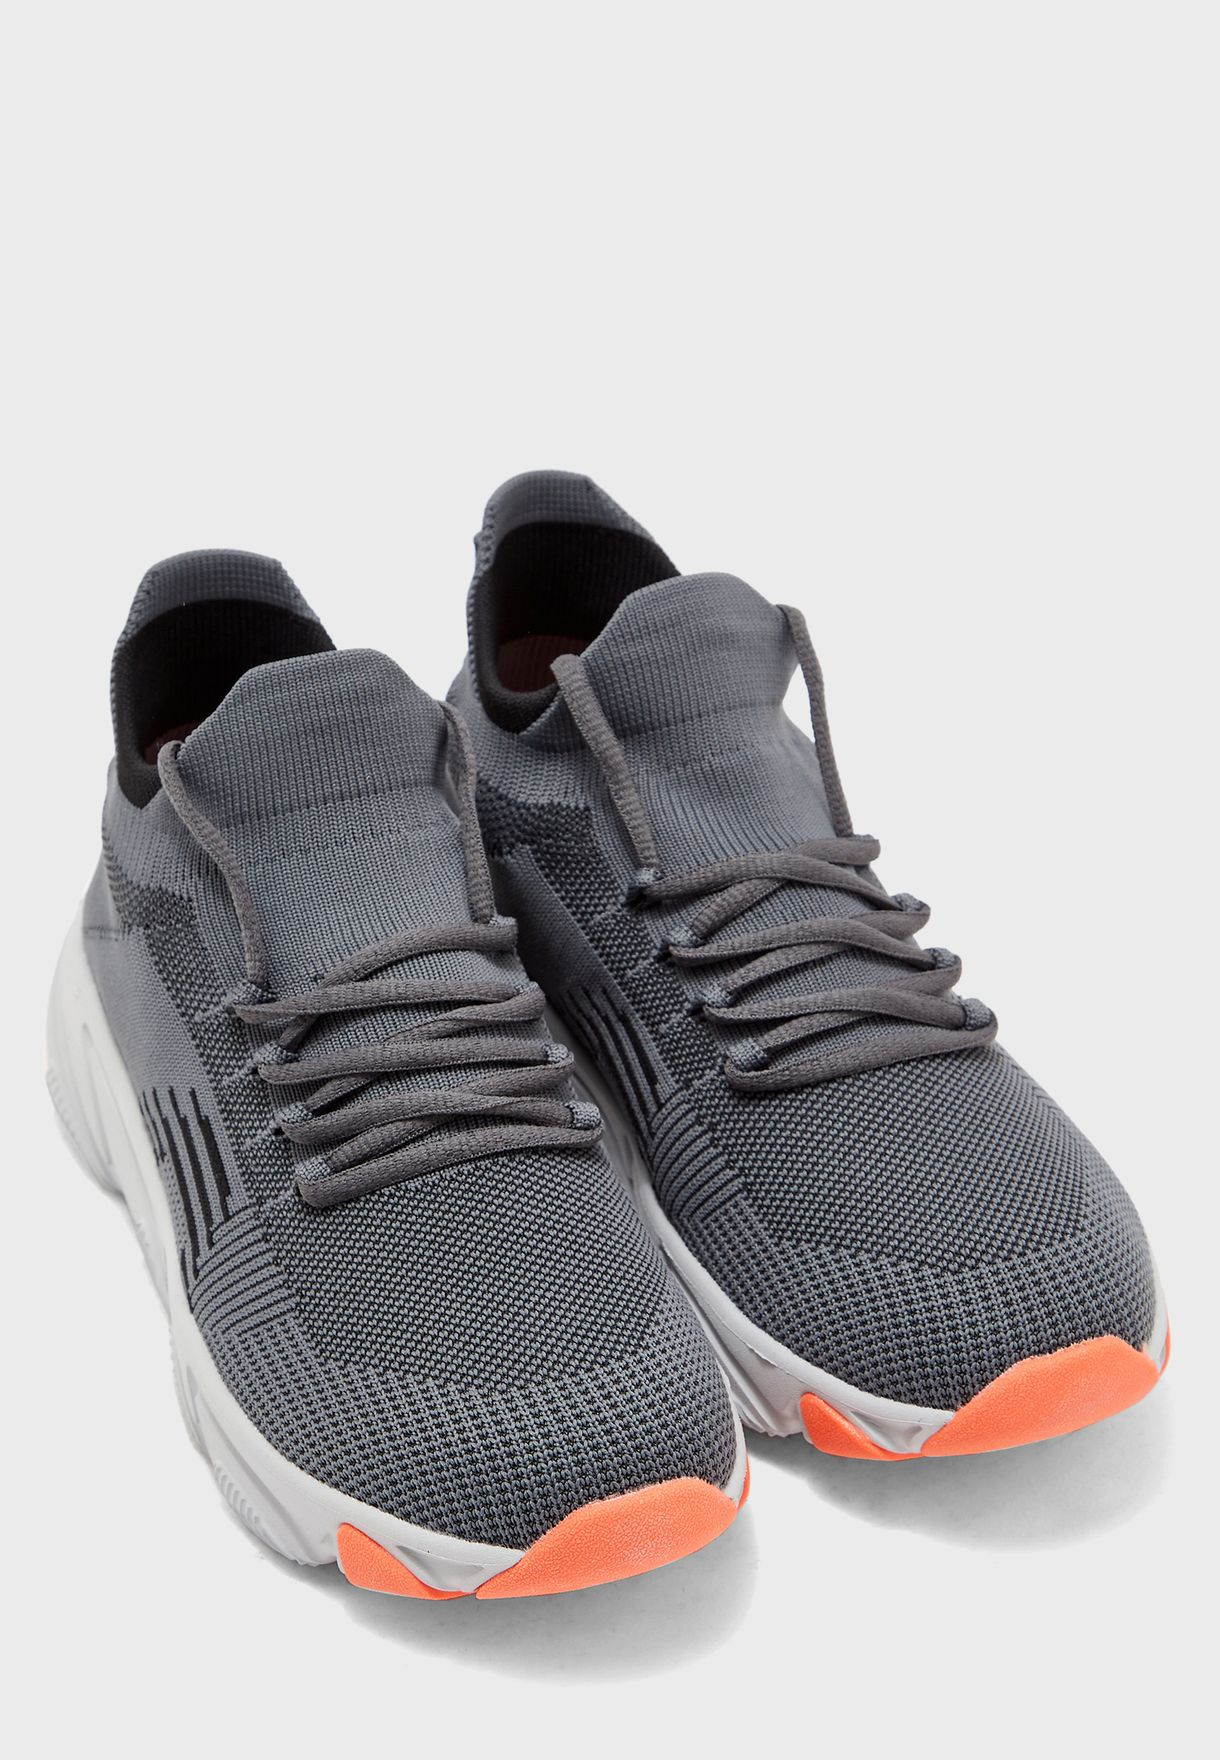 Mid Top Knitted Comfort Sneakers